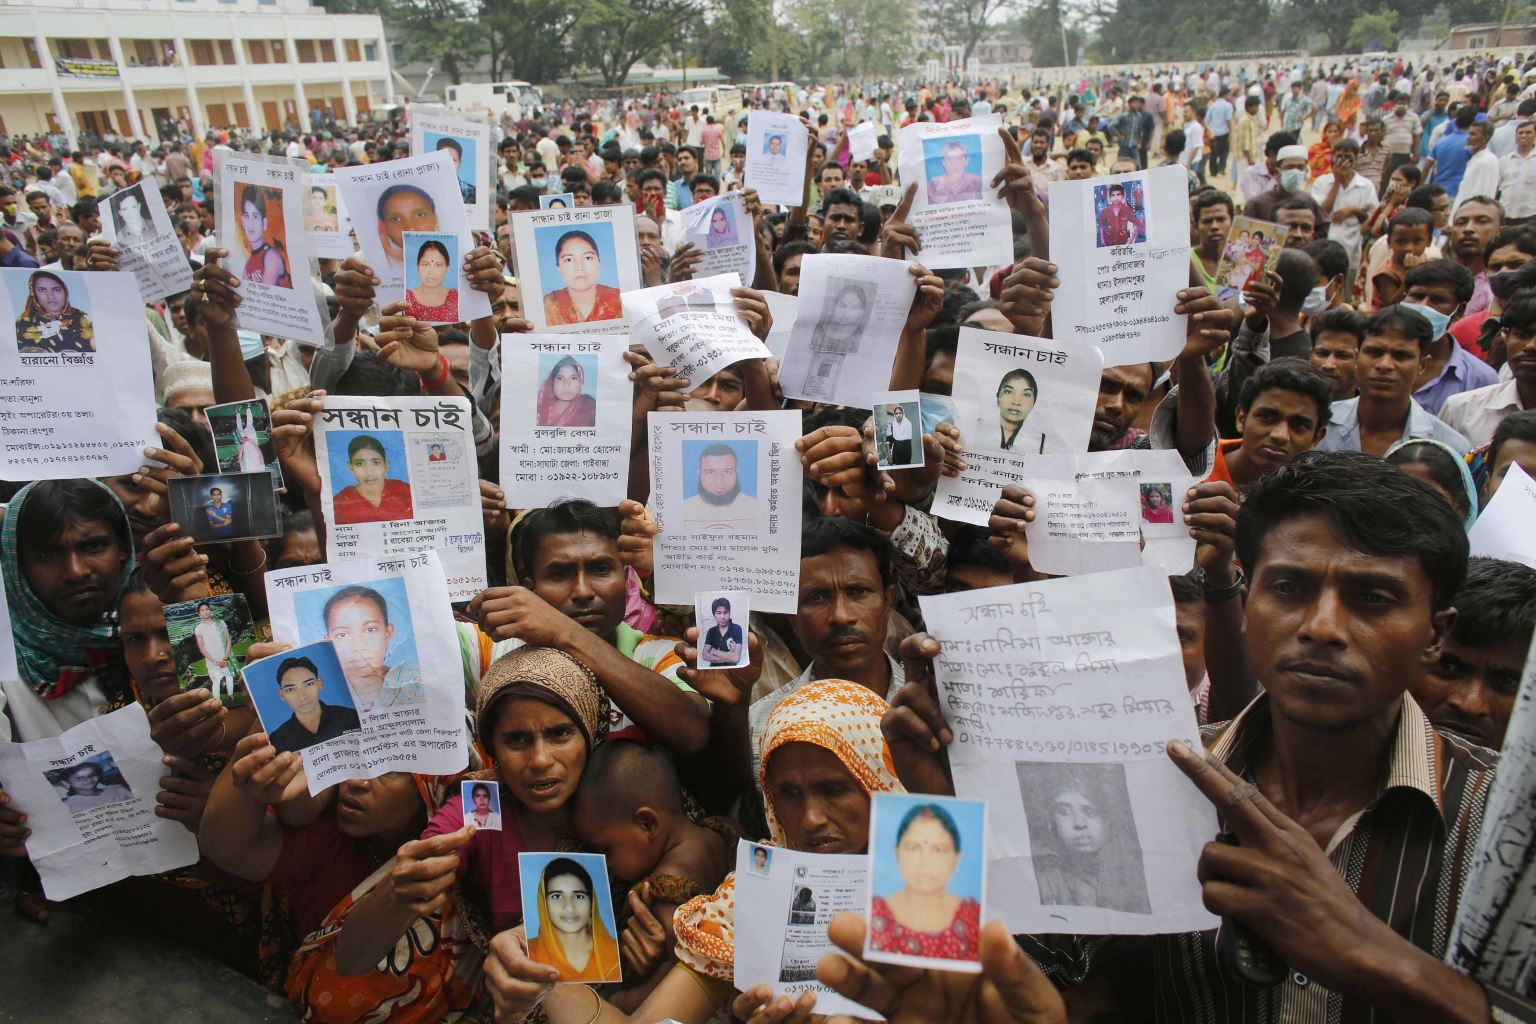 http://news.yahoo.com/lightbox/deadly-building-collapse-in-bangladesh-1366797674-slideshow/relatives-mourn-show-pictures-garment-workers-believed-trapped-photo-093538525.html